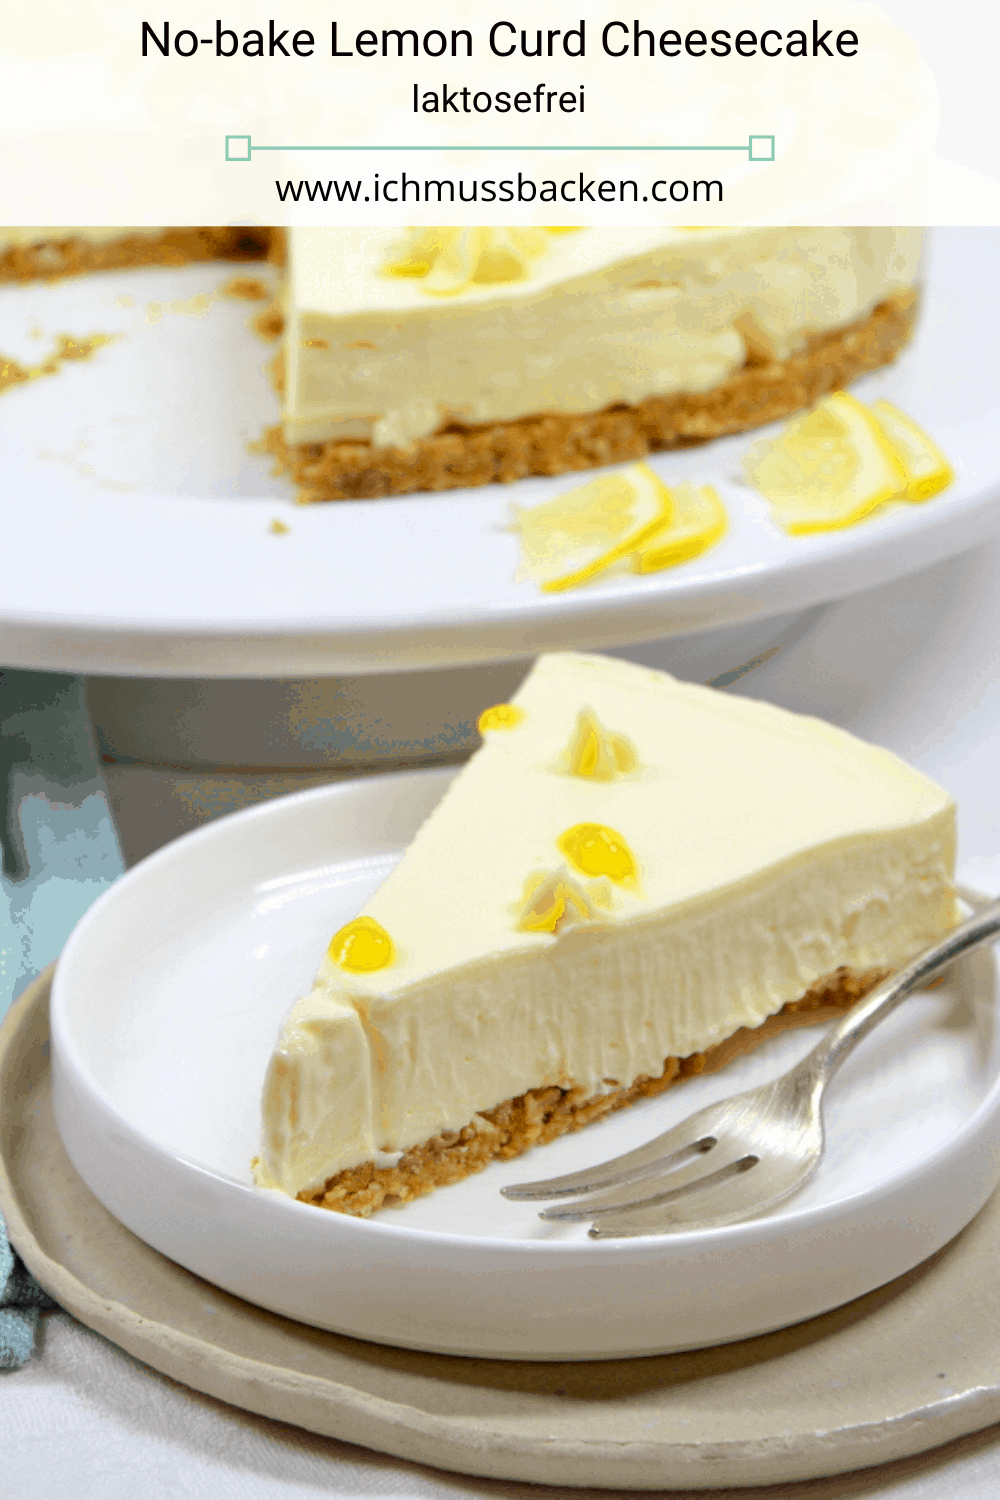 No-bake Lemon Curd Cheesecake